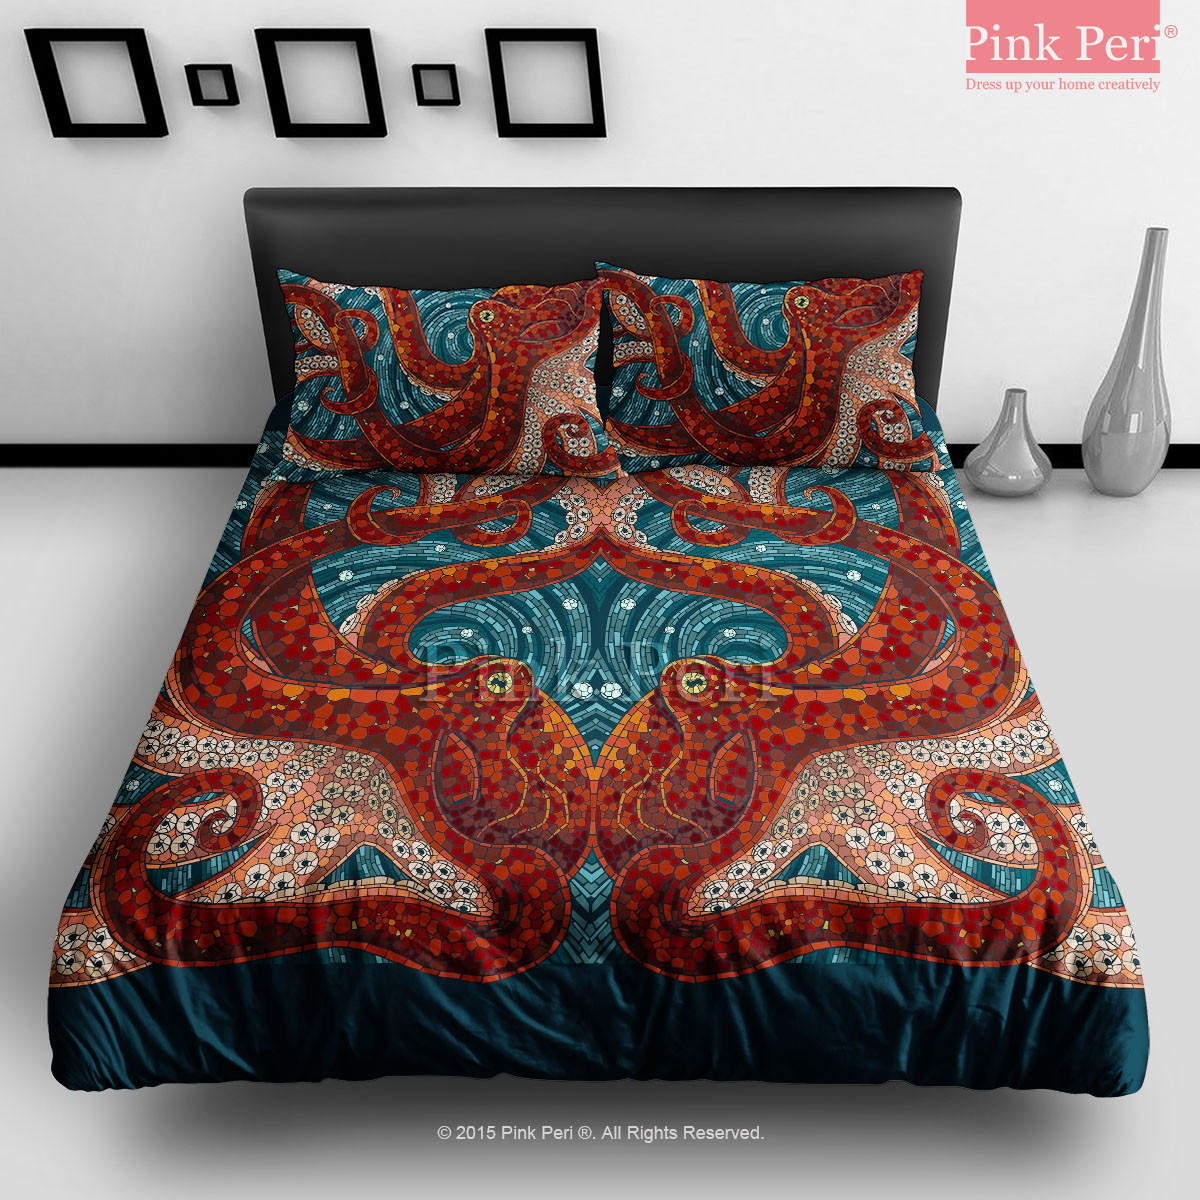 Mosaic art octopus bedding sets home from pink peri for Living room quilt cover